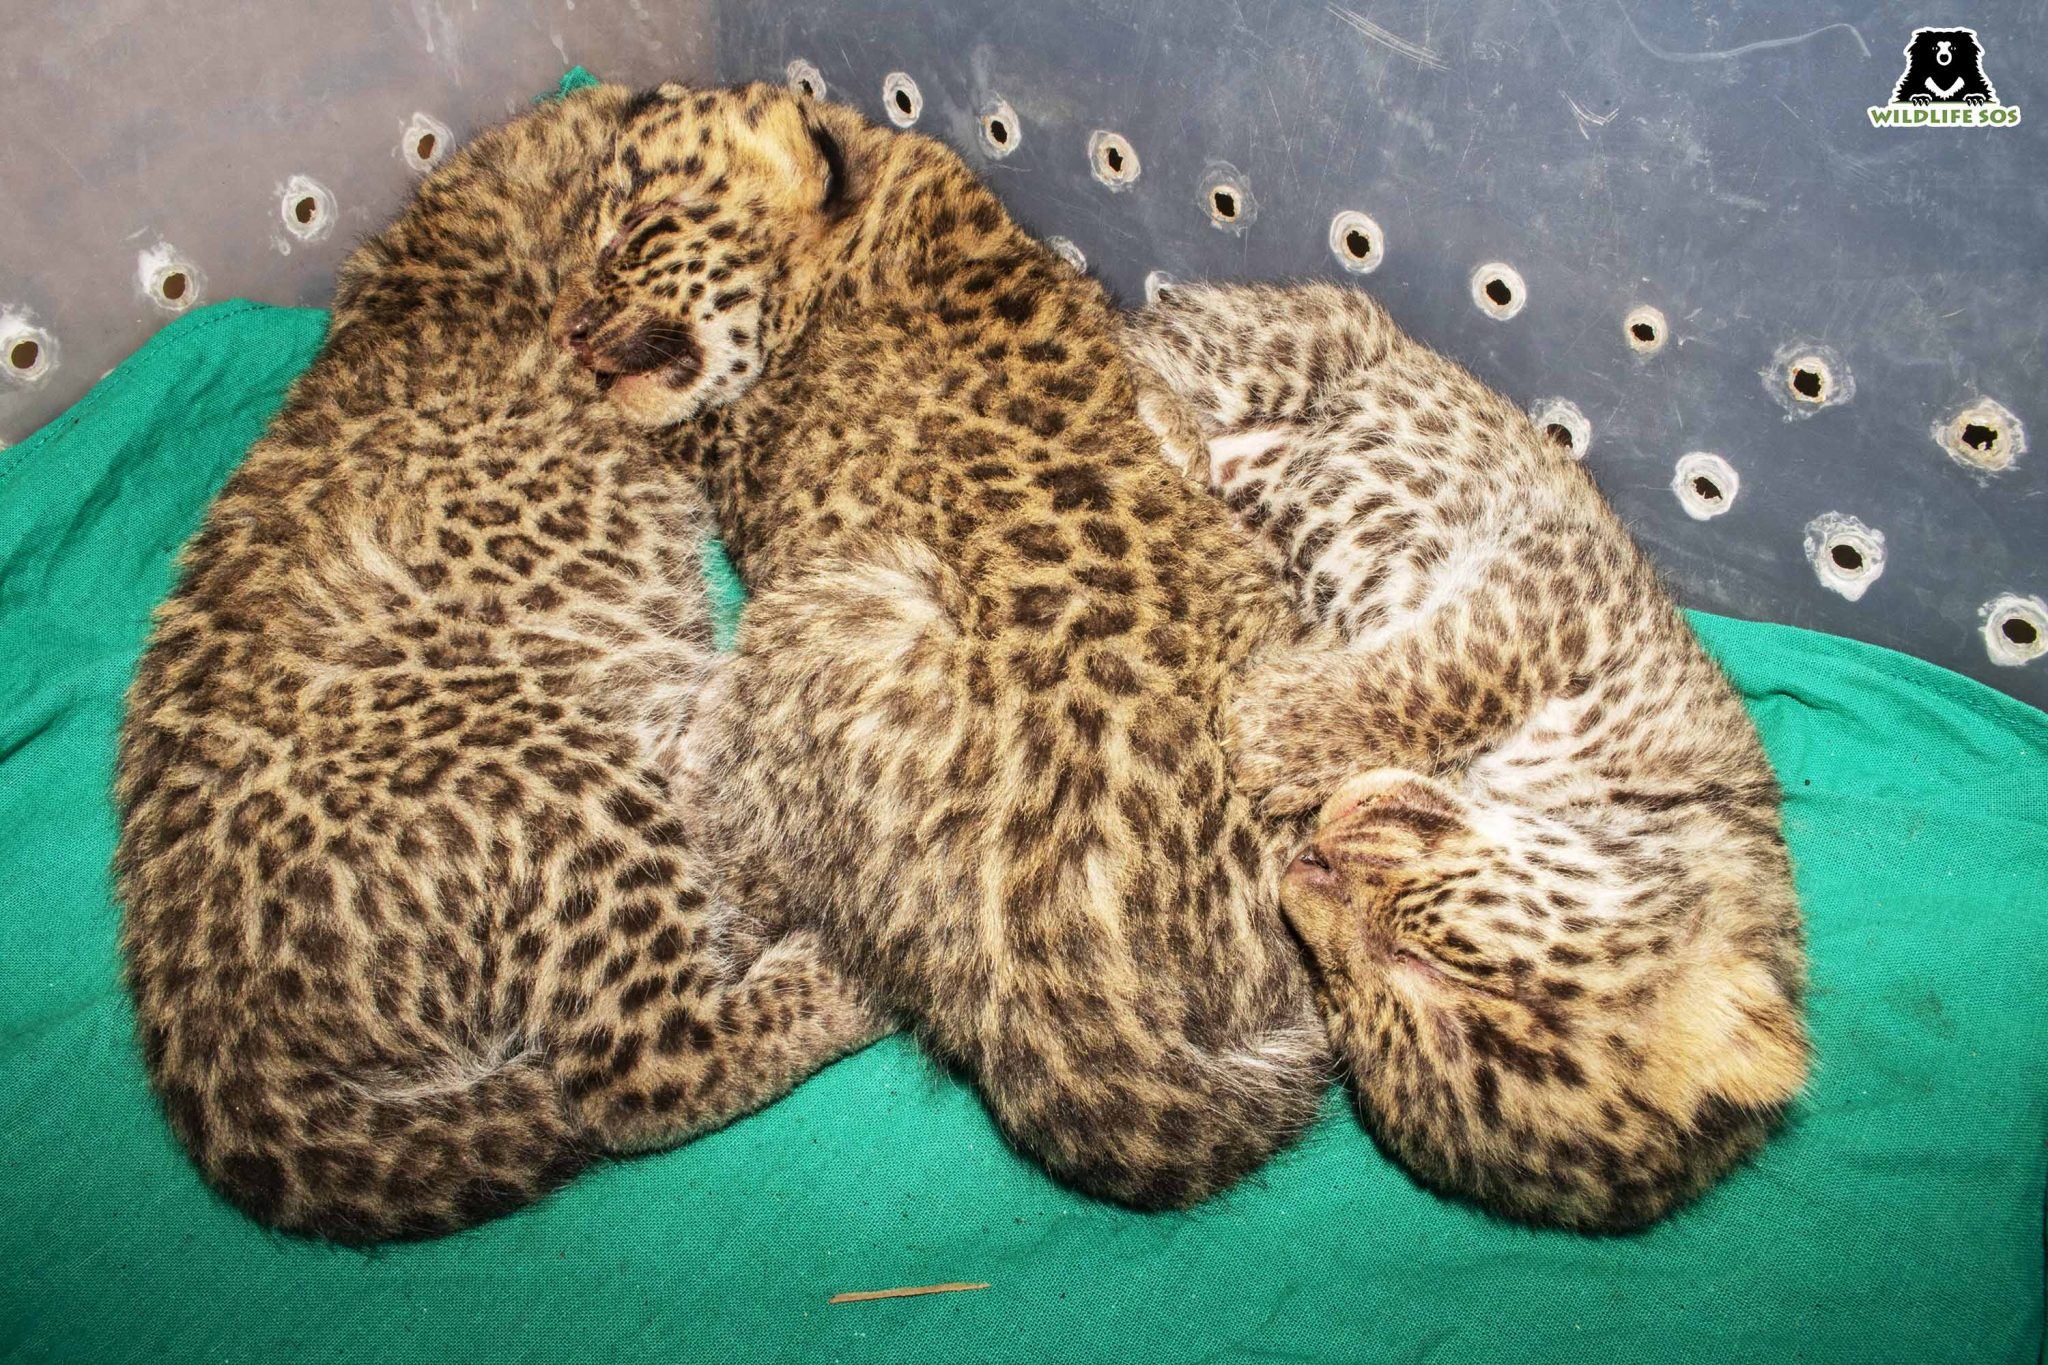 The leopard cubs were estimated to be 15 days old.Image Courtesy of Wildlife SOS